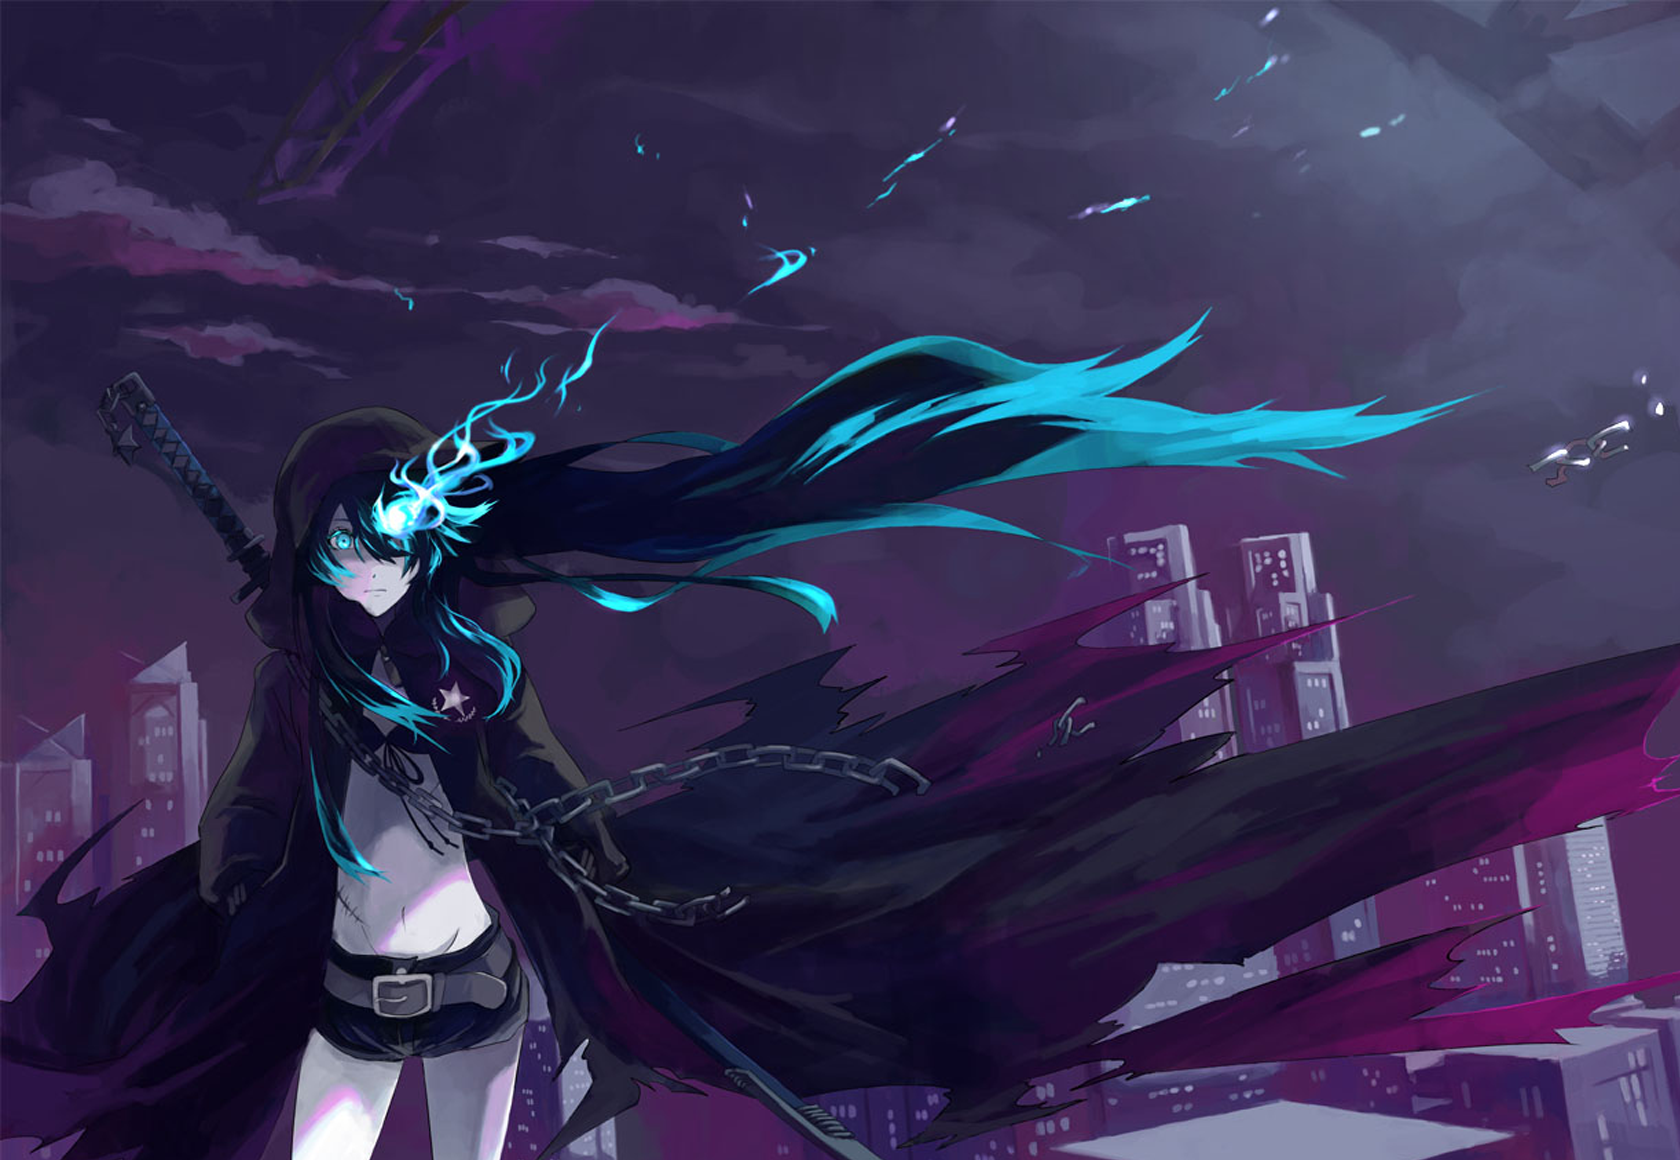 Anime Black Rock Shooter Blue Eyes Long Hair Girl Anime Sword Woman Warrior Blue Hair Wallpaper Anime Papel De Parede Anime Cabelo Preto